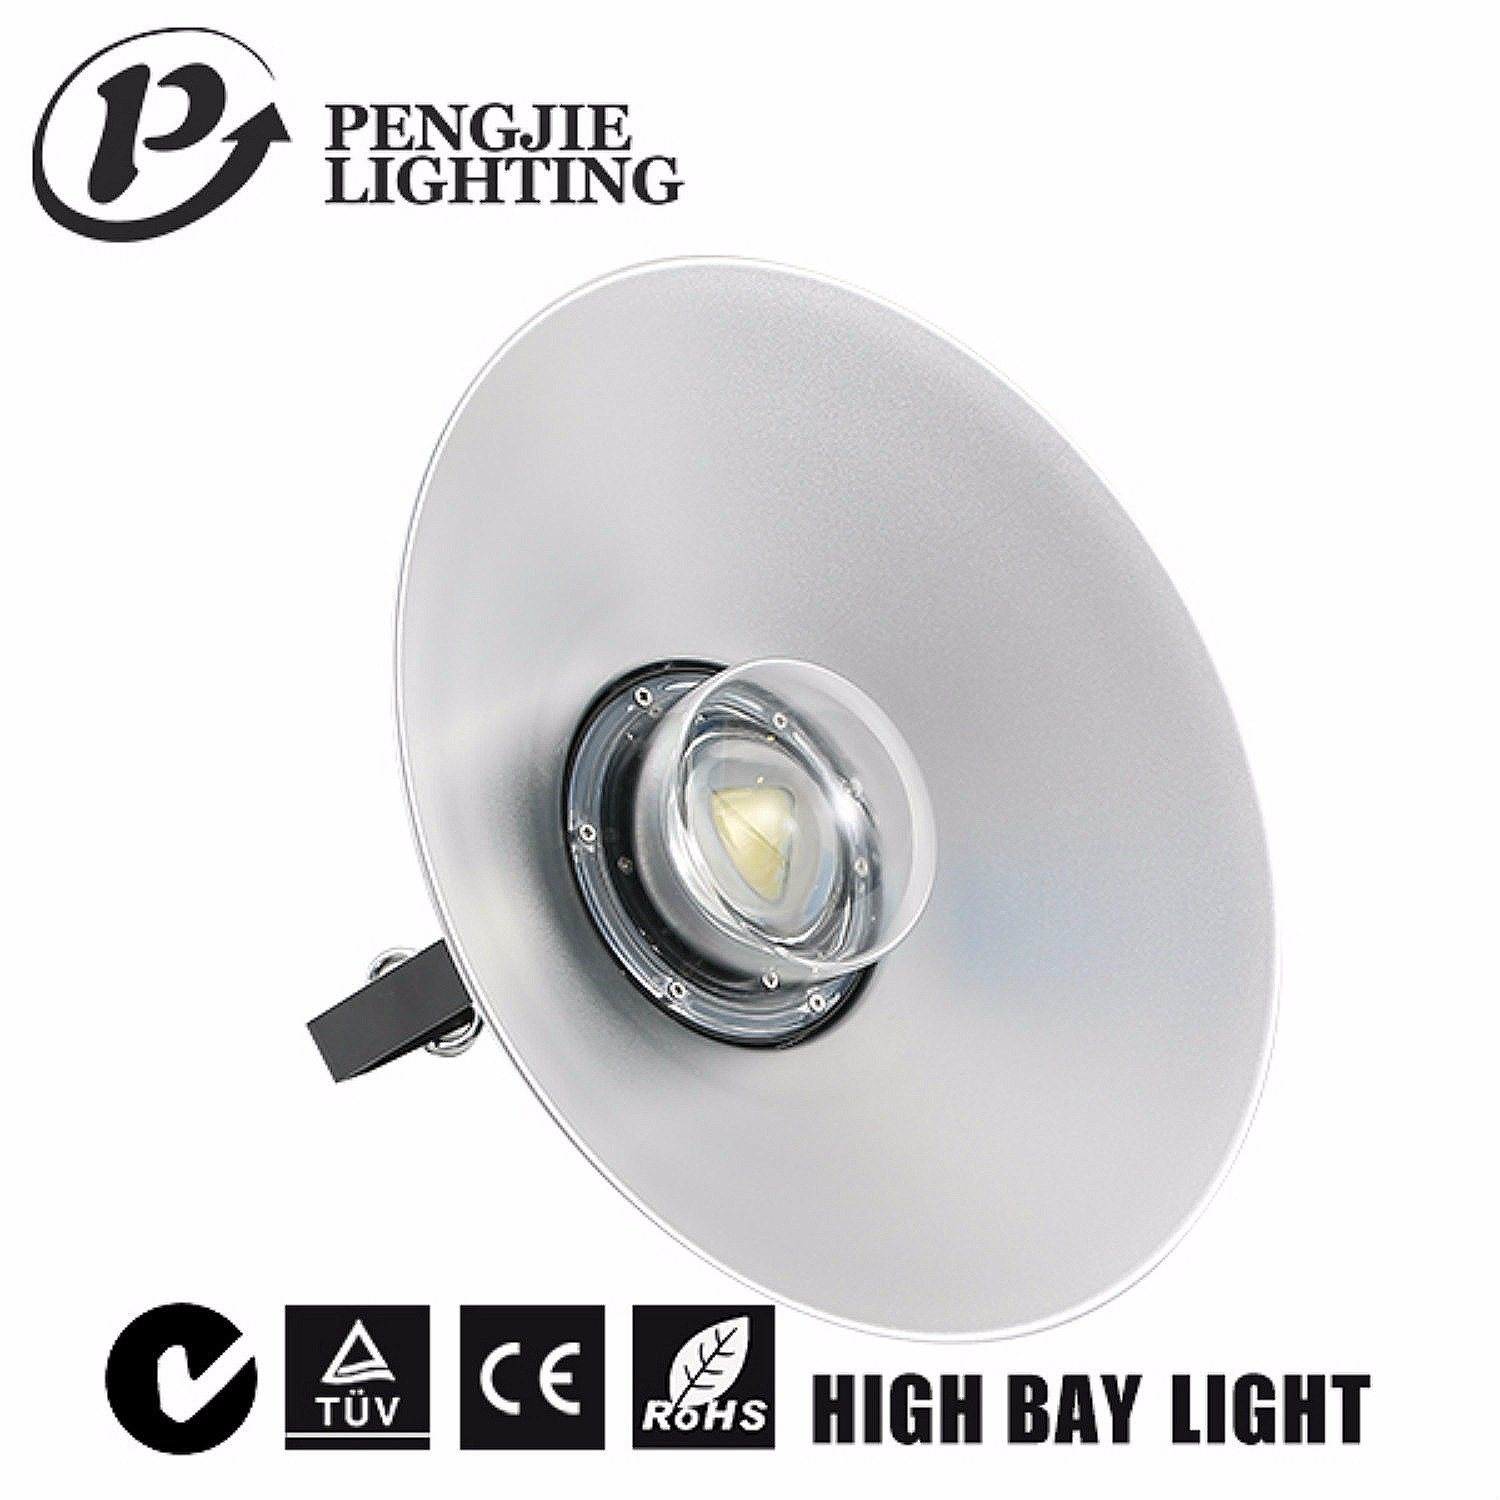 High Power Most Powerful COB LED High Bay Light 50W